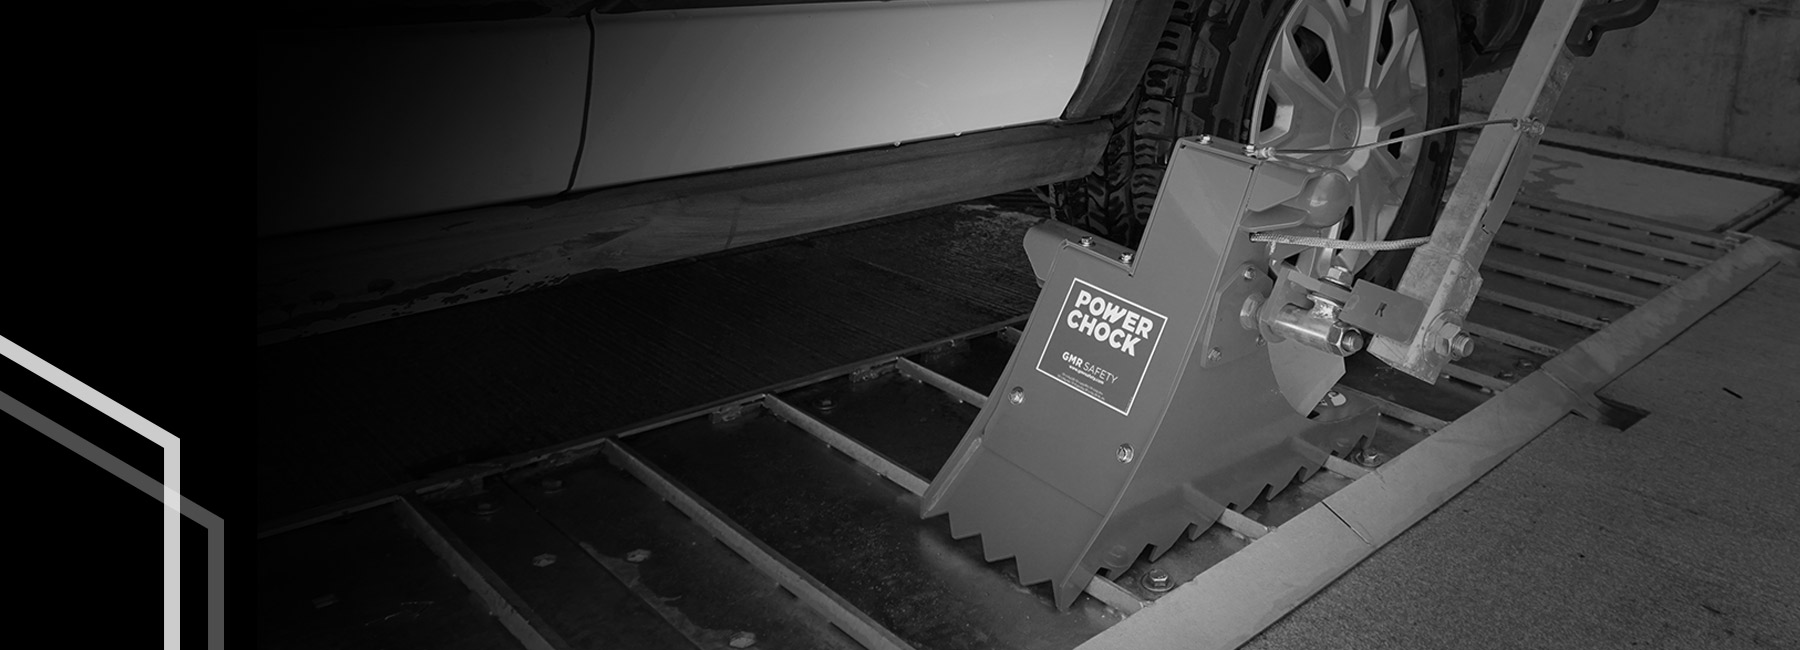 POWERCHOCK secures all types vehicles